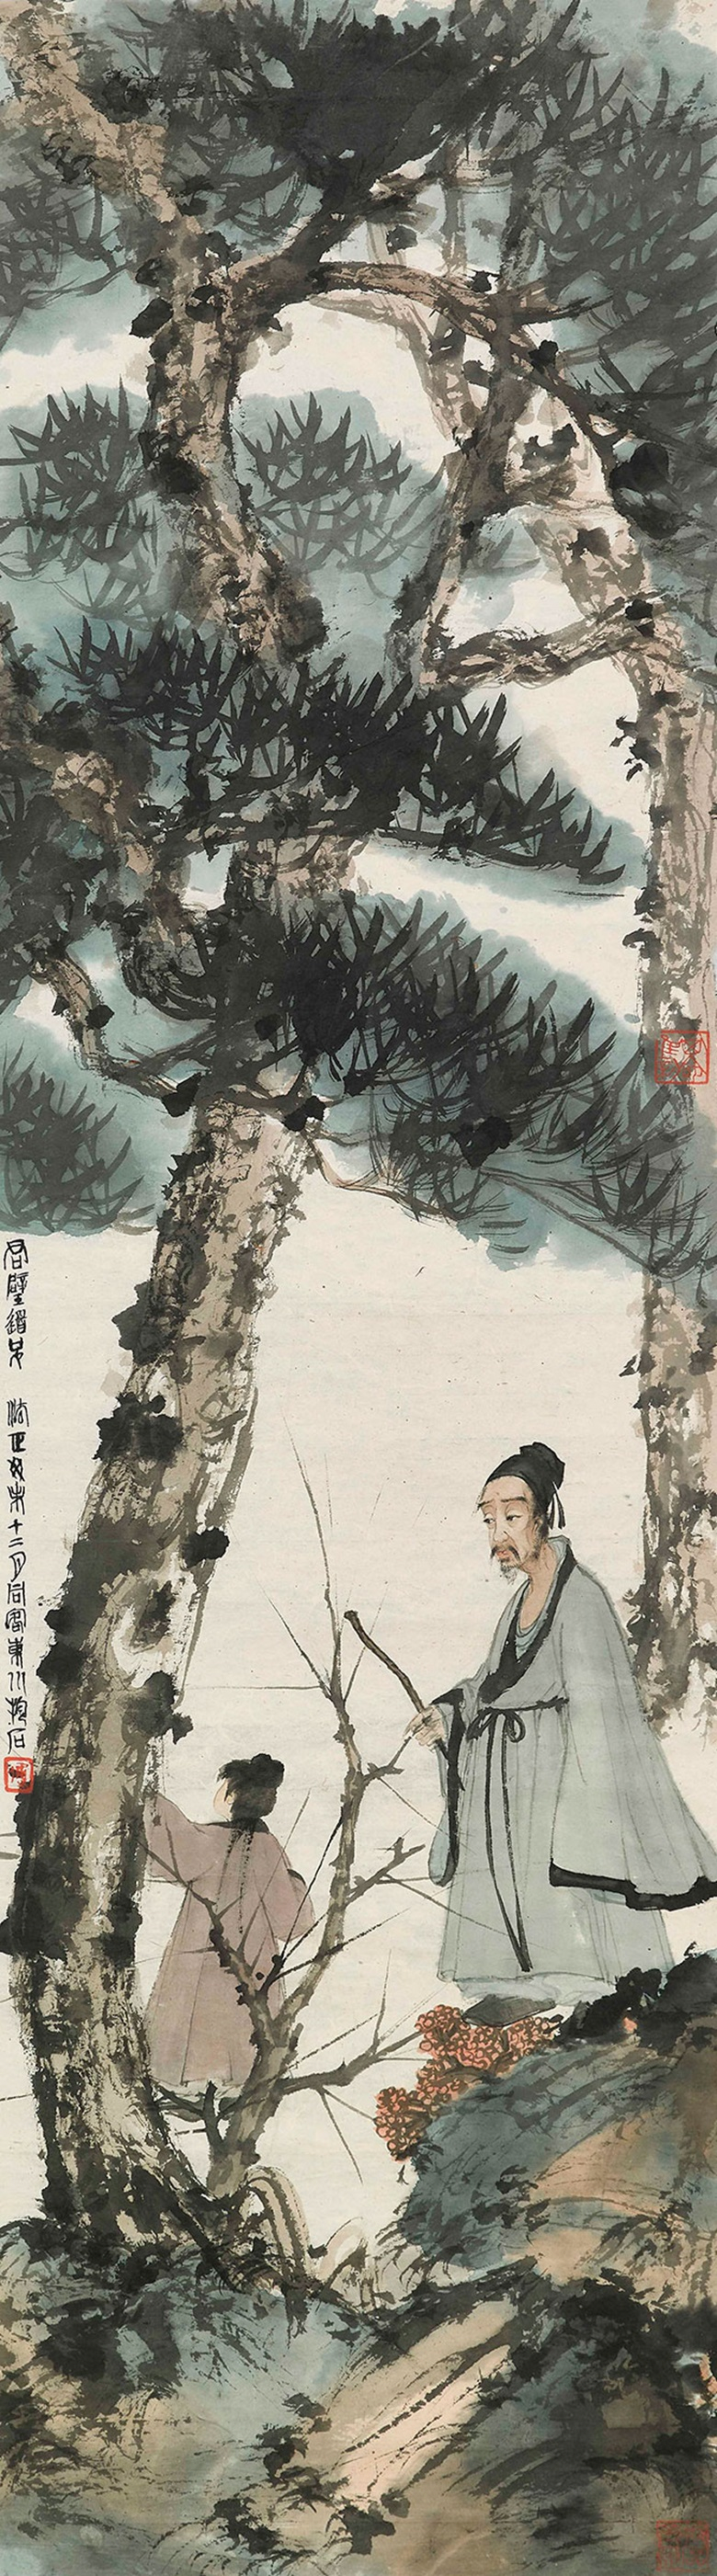 Fu Baoshi (1904-1965), Asking the Child under Pinetree, 1943. Unmounted scroll, framed, ink and colour on paper. 108.5 x 31cm (42¾ x 12¼ in). Estimate HK$35,000,000-45,000,000. This work is offered in Fine Chinese Modern Paintings on 29 May 2018 at Christies in Hong Kong